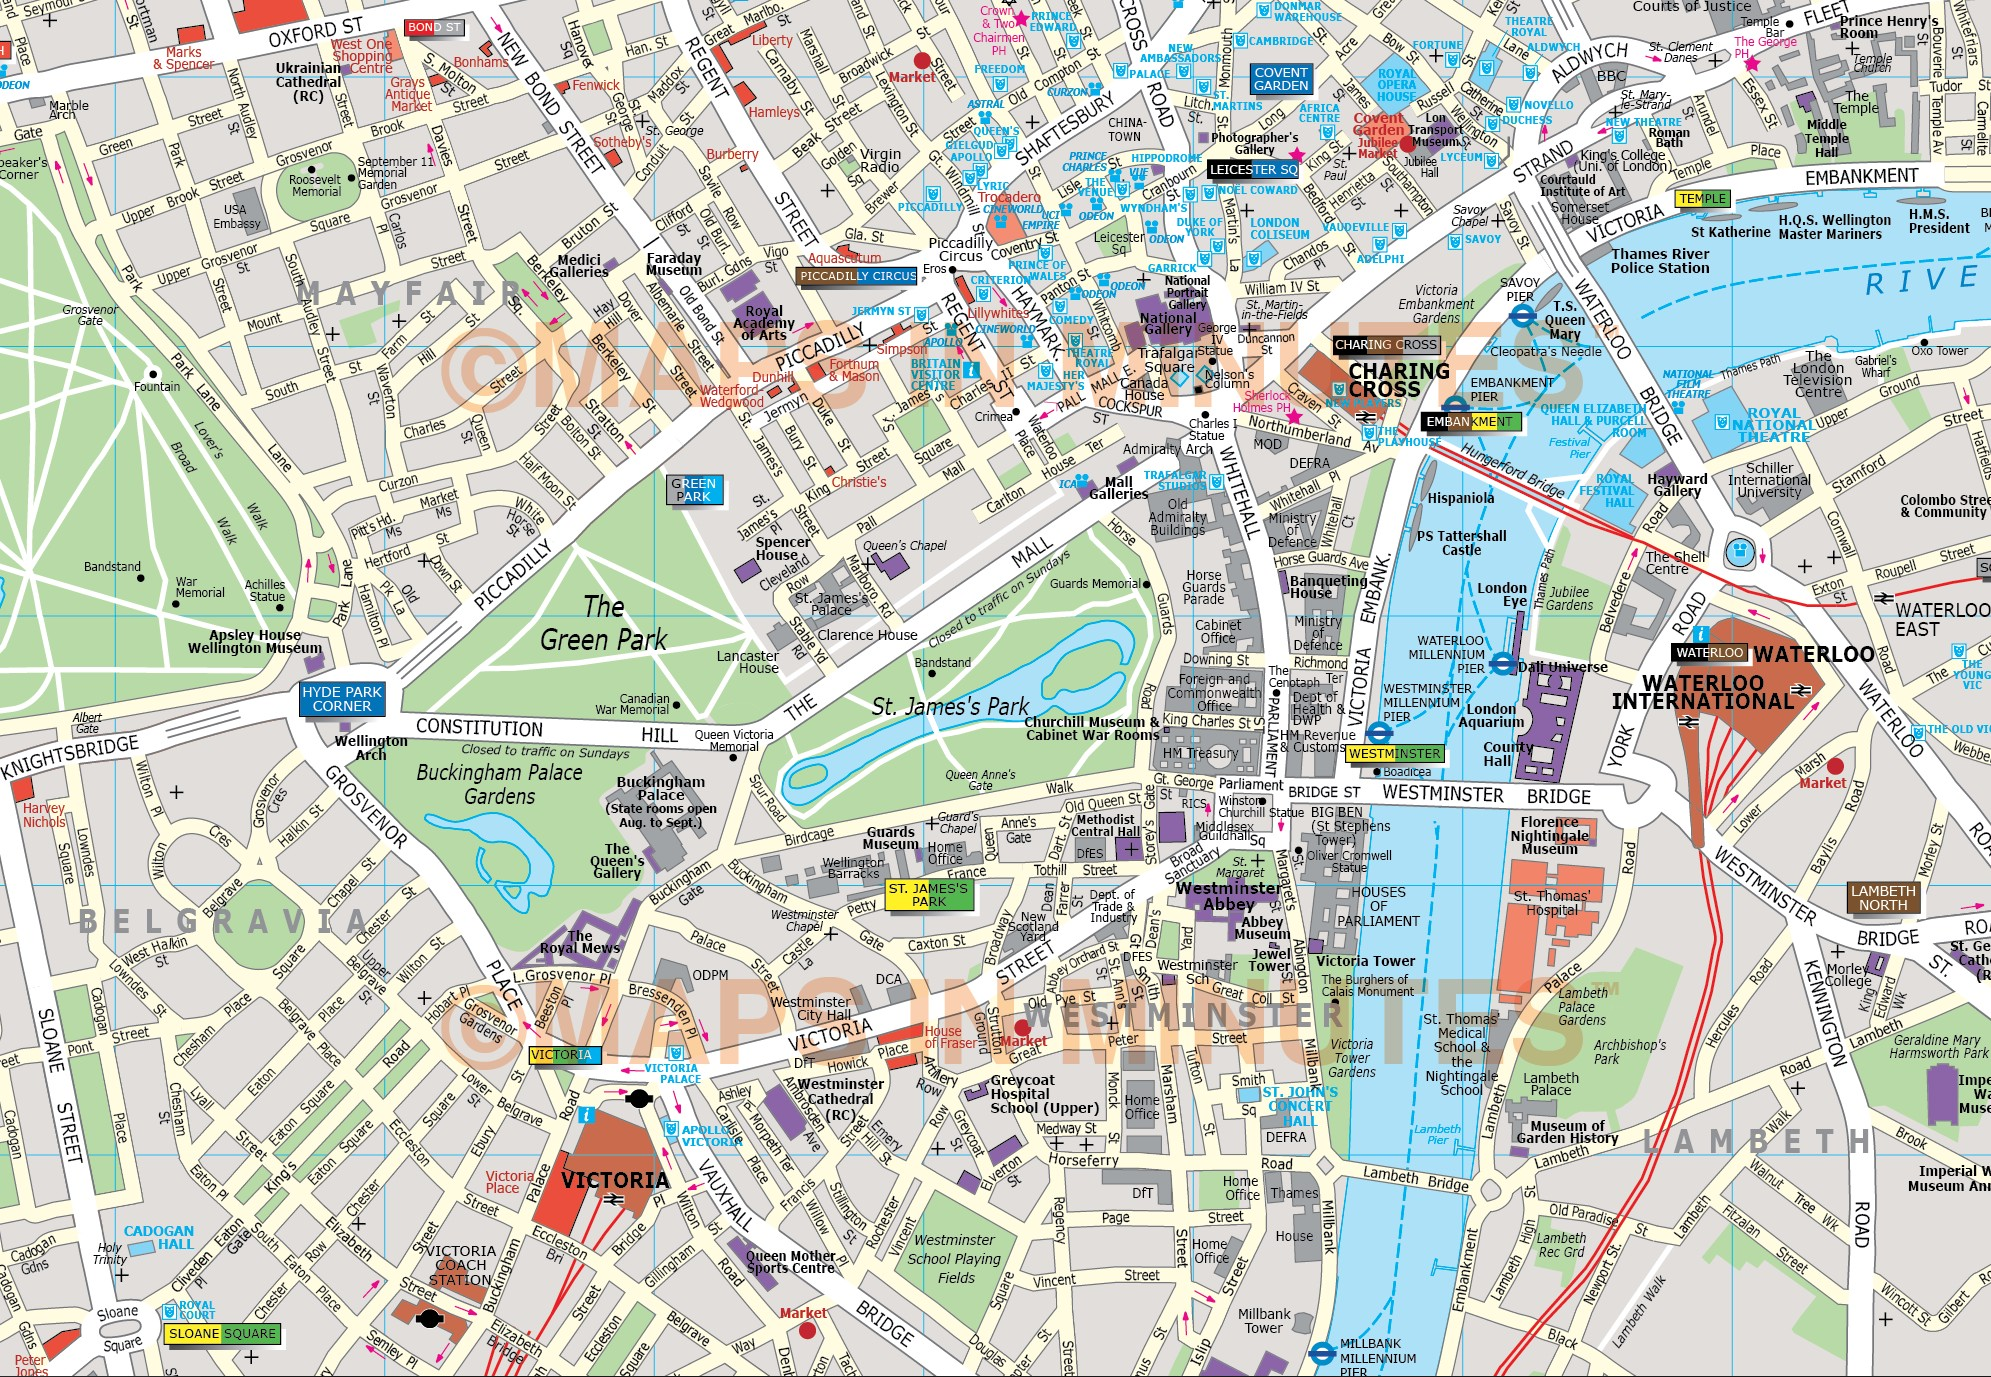 Karte London City.Deluxe London City Map In Illustrator Editable Vector Format